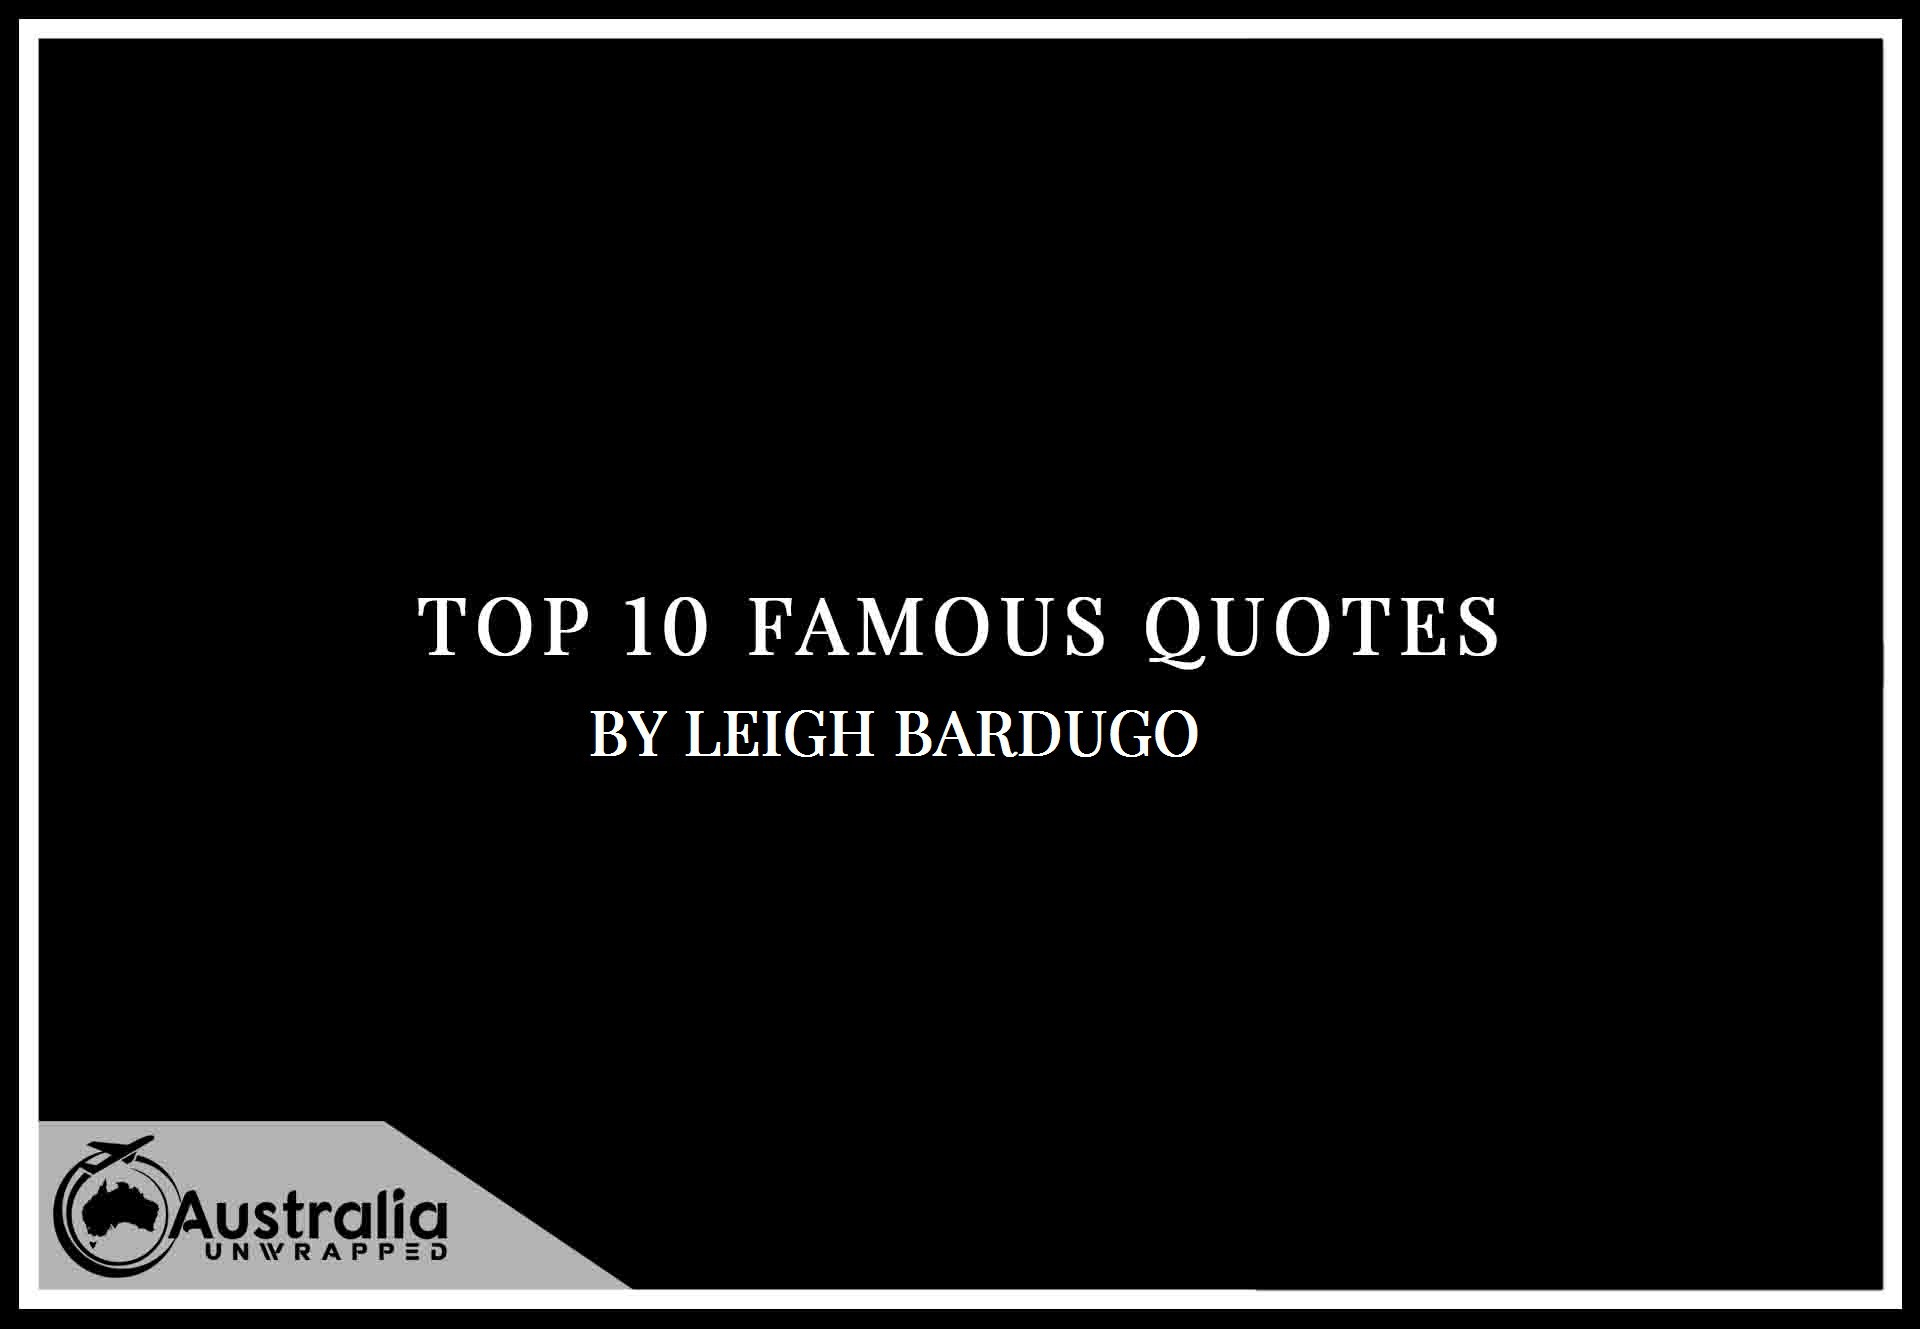 Leigh Bardugo's Top 10 Popular and Famous Quotes